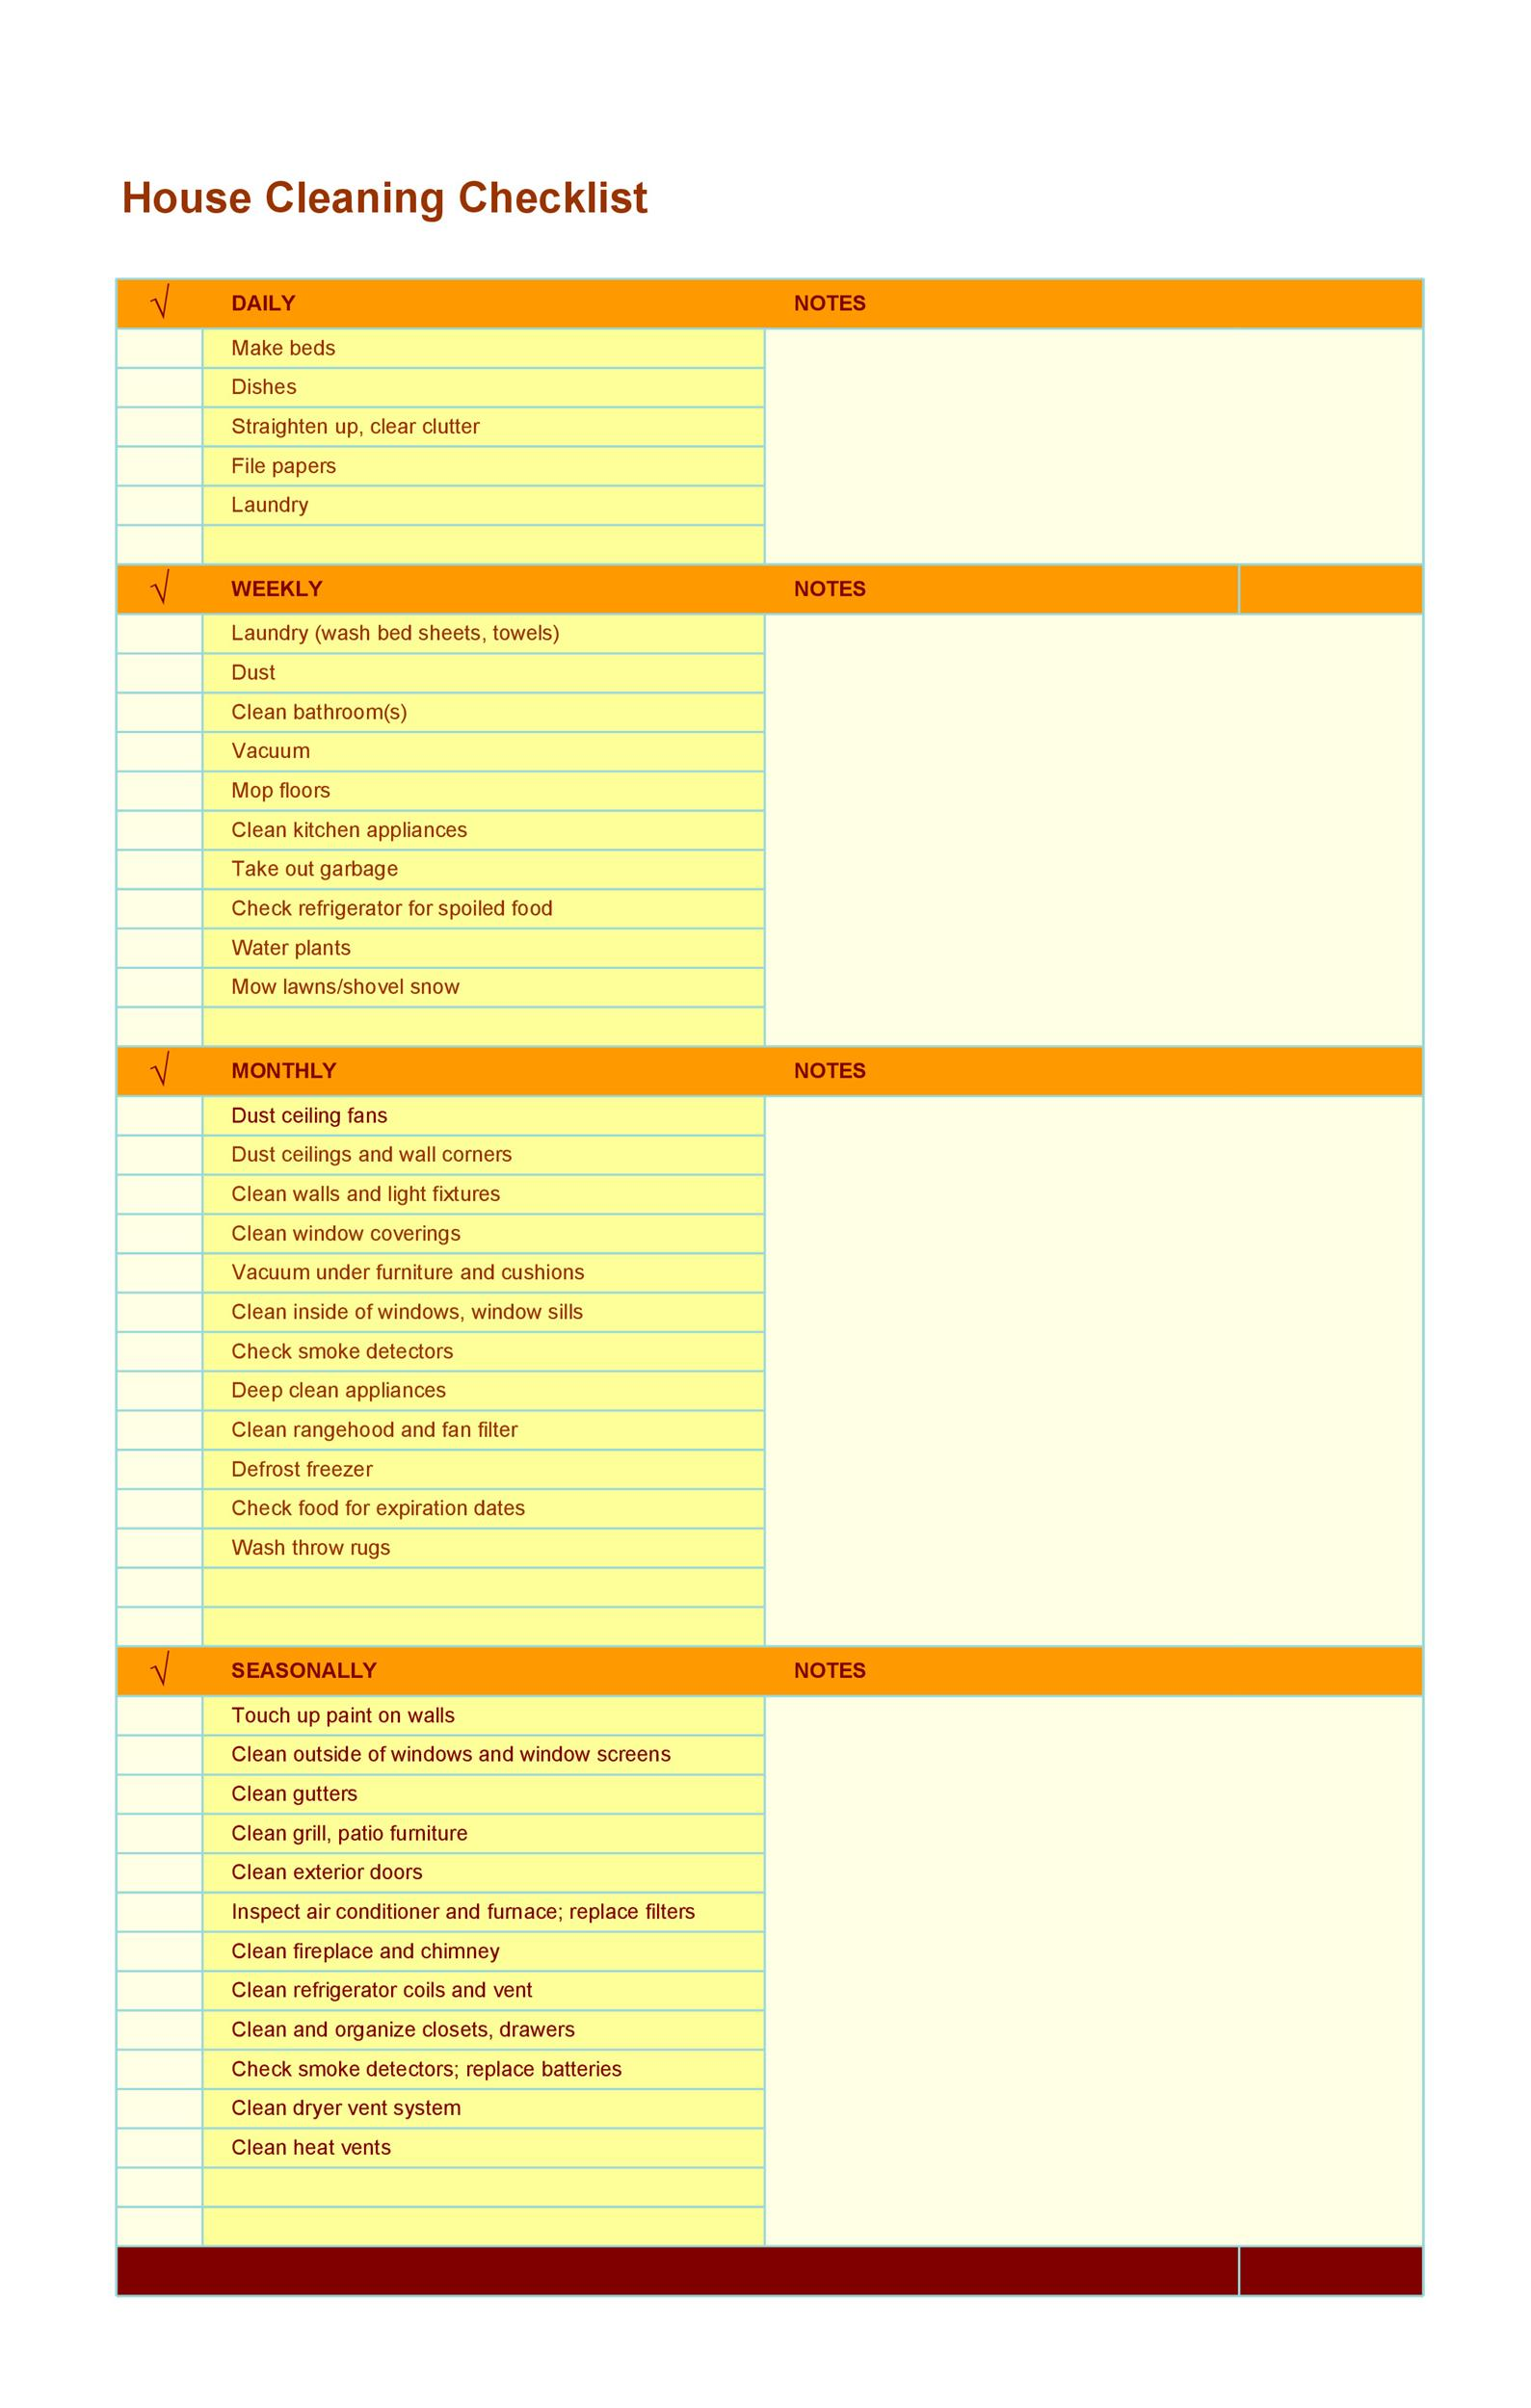 image regarding Printable House Cleaning Checklist Pdf titled 40 Printable Area Cleansing Record Templates ᐅ Template Lab